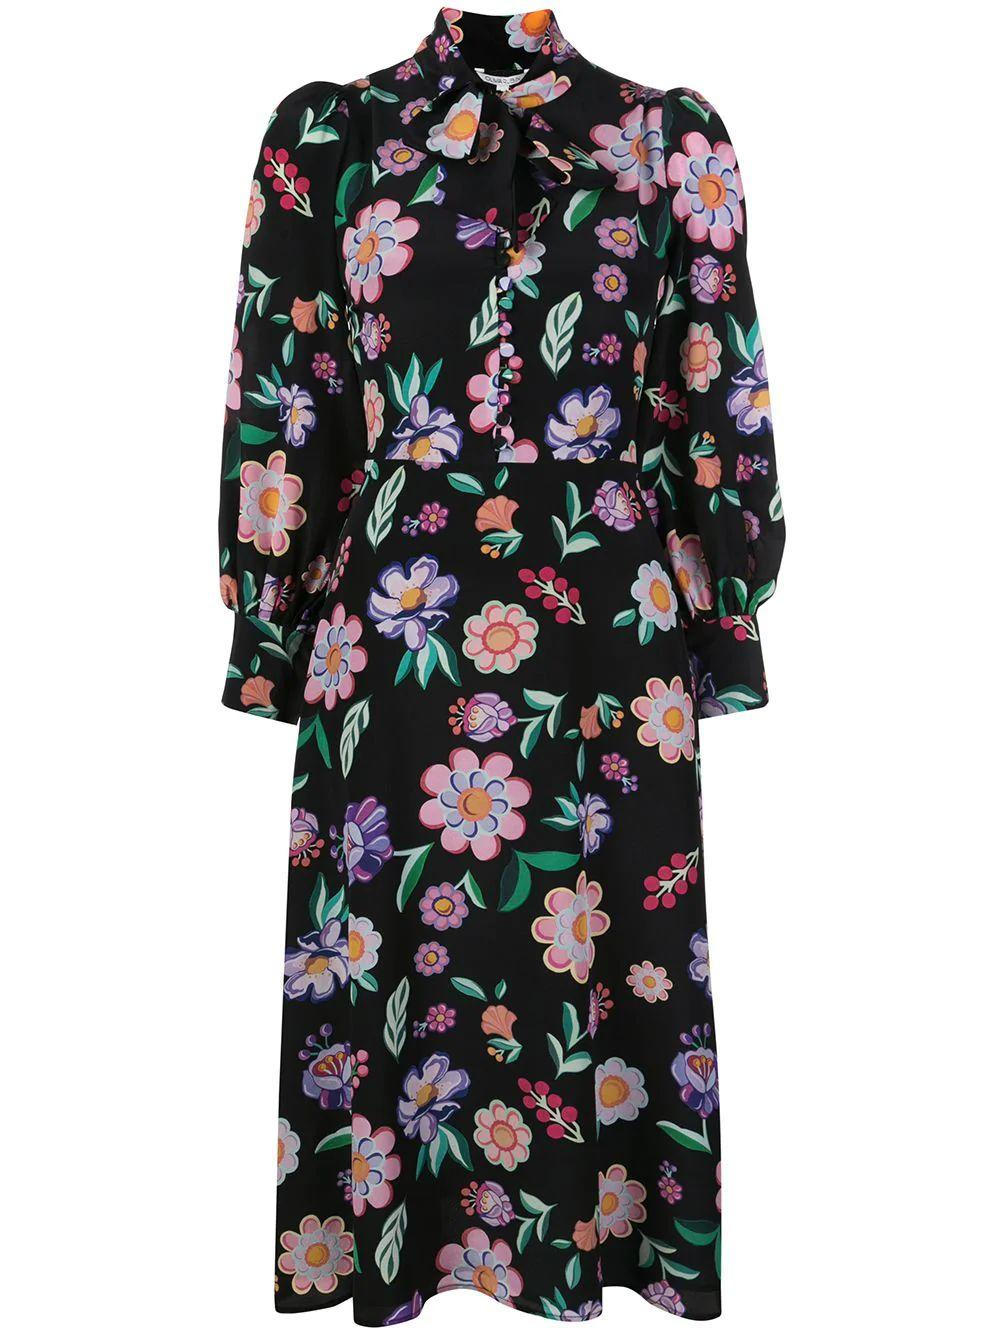 Clementine Floral Dress Item # OR0380